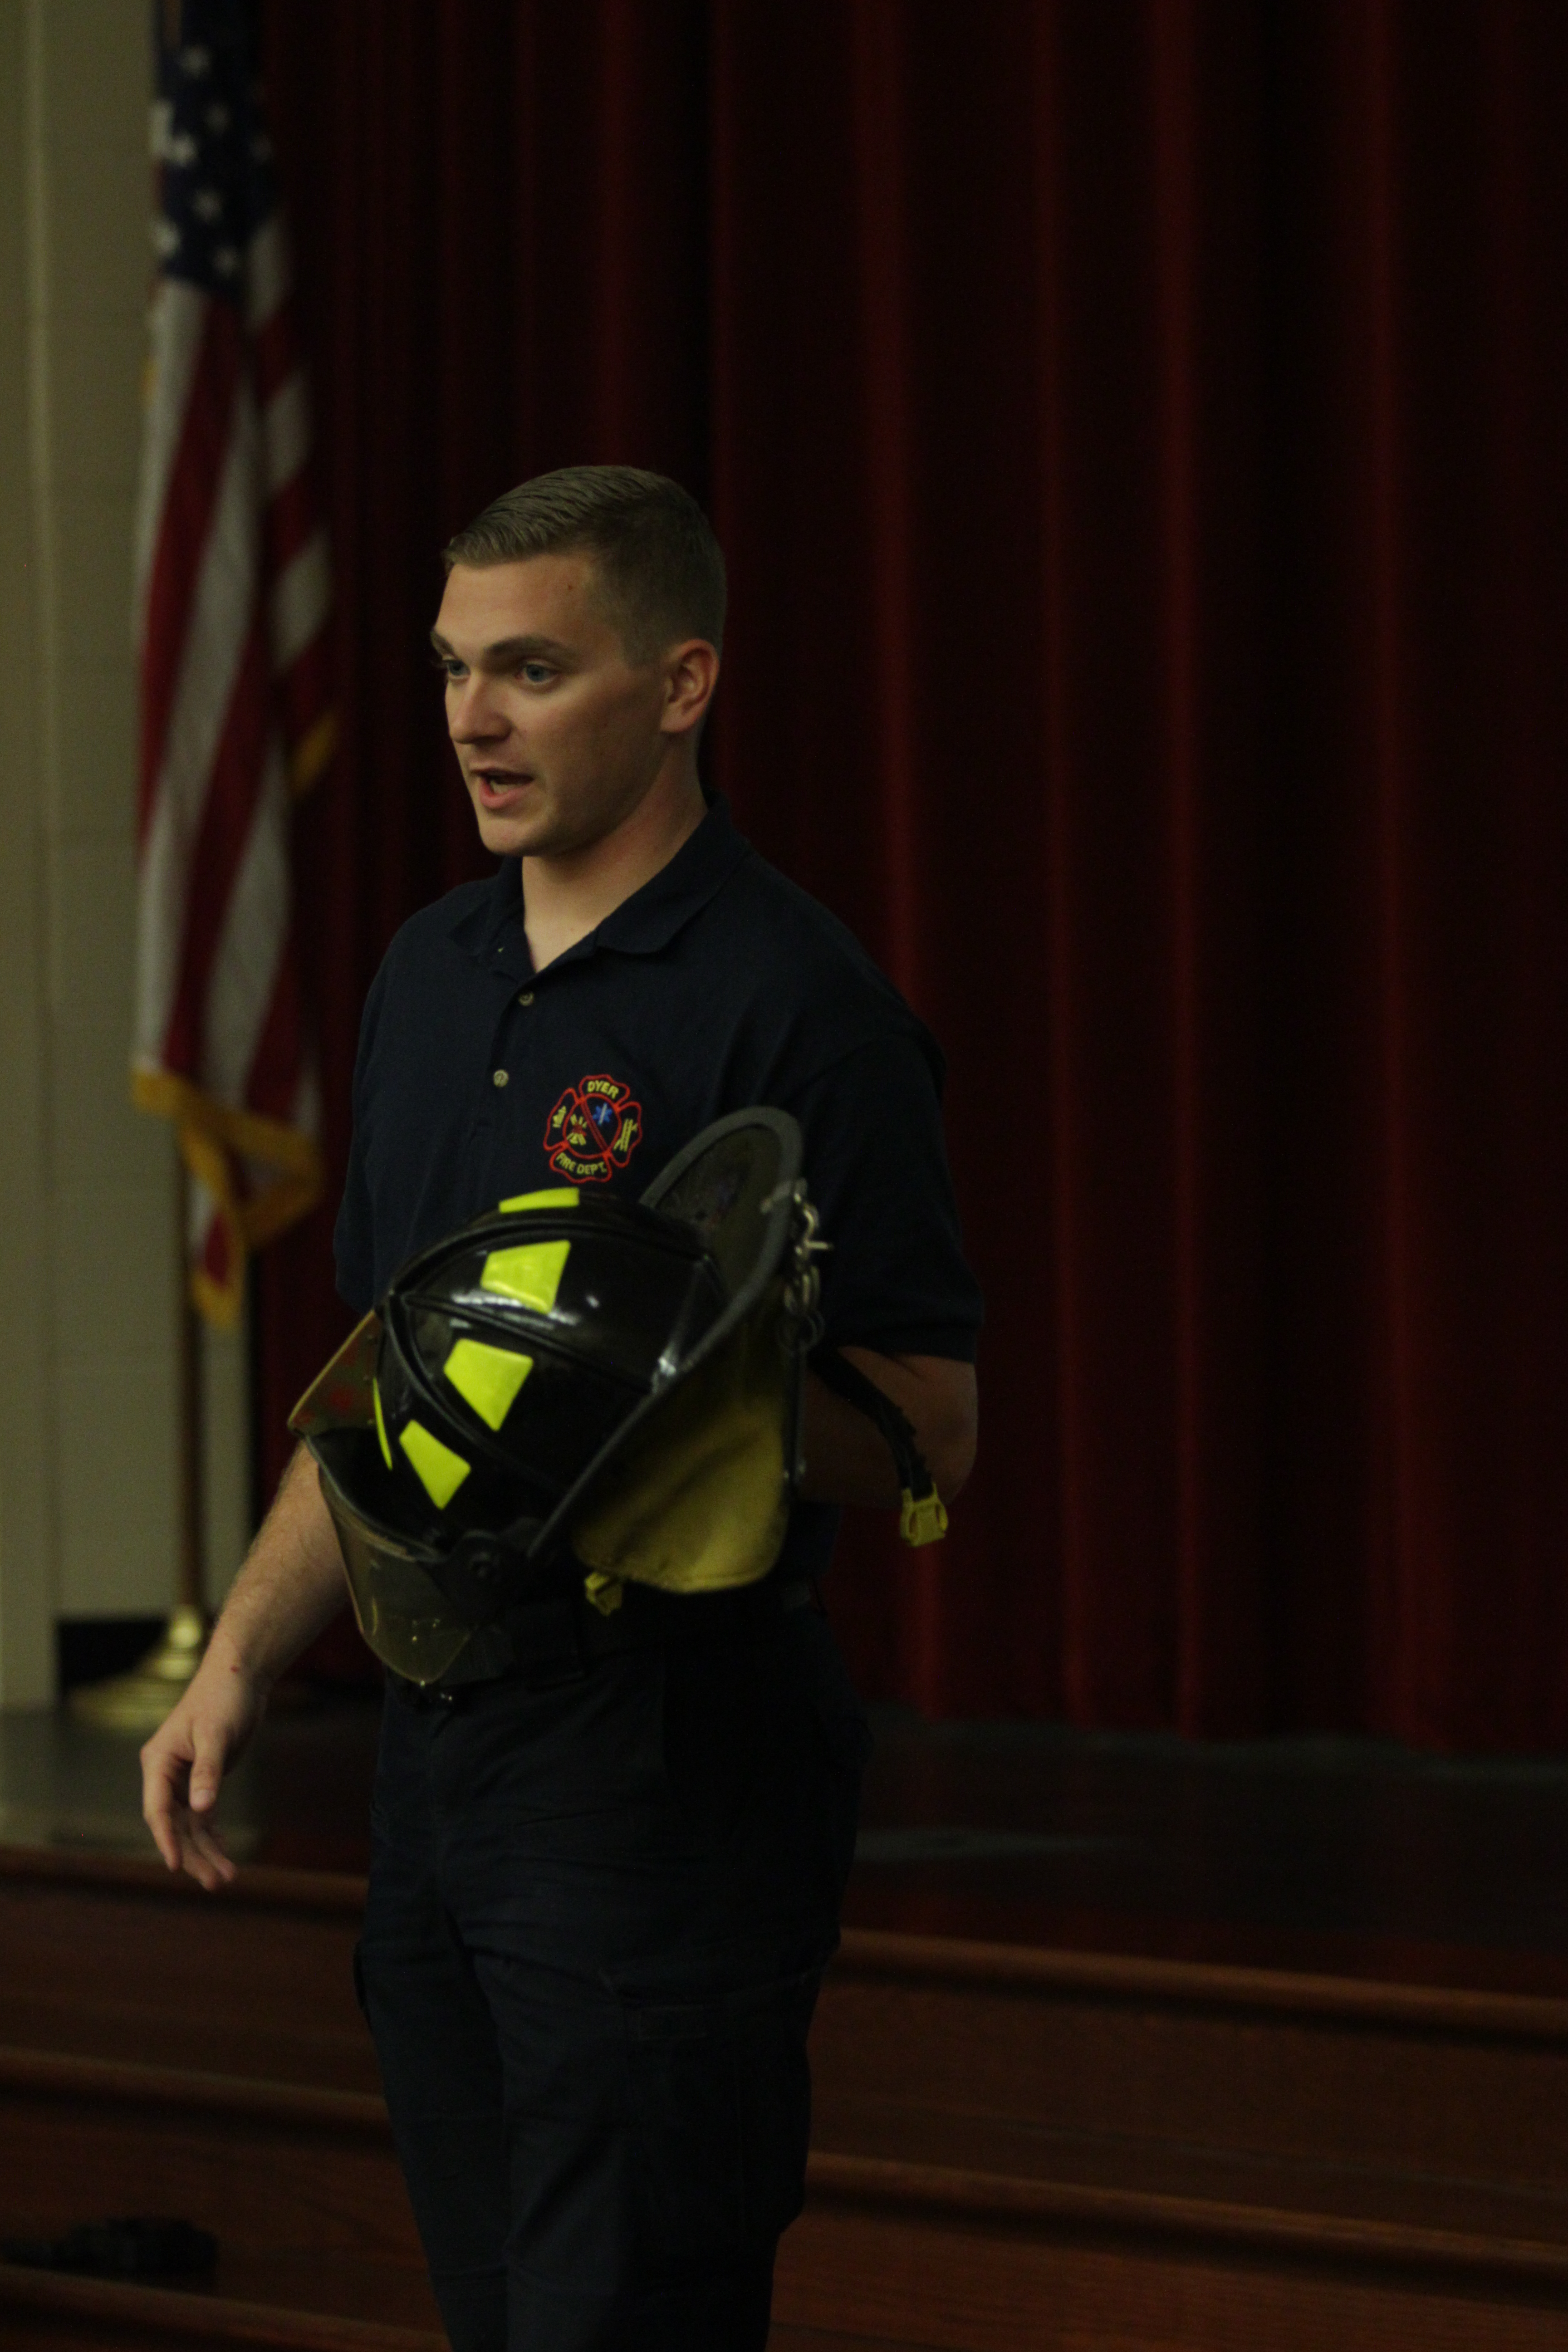 A firefighter talks to the kids